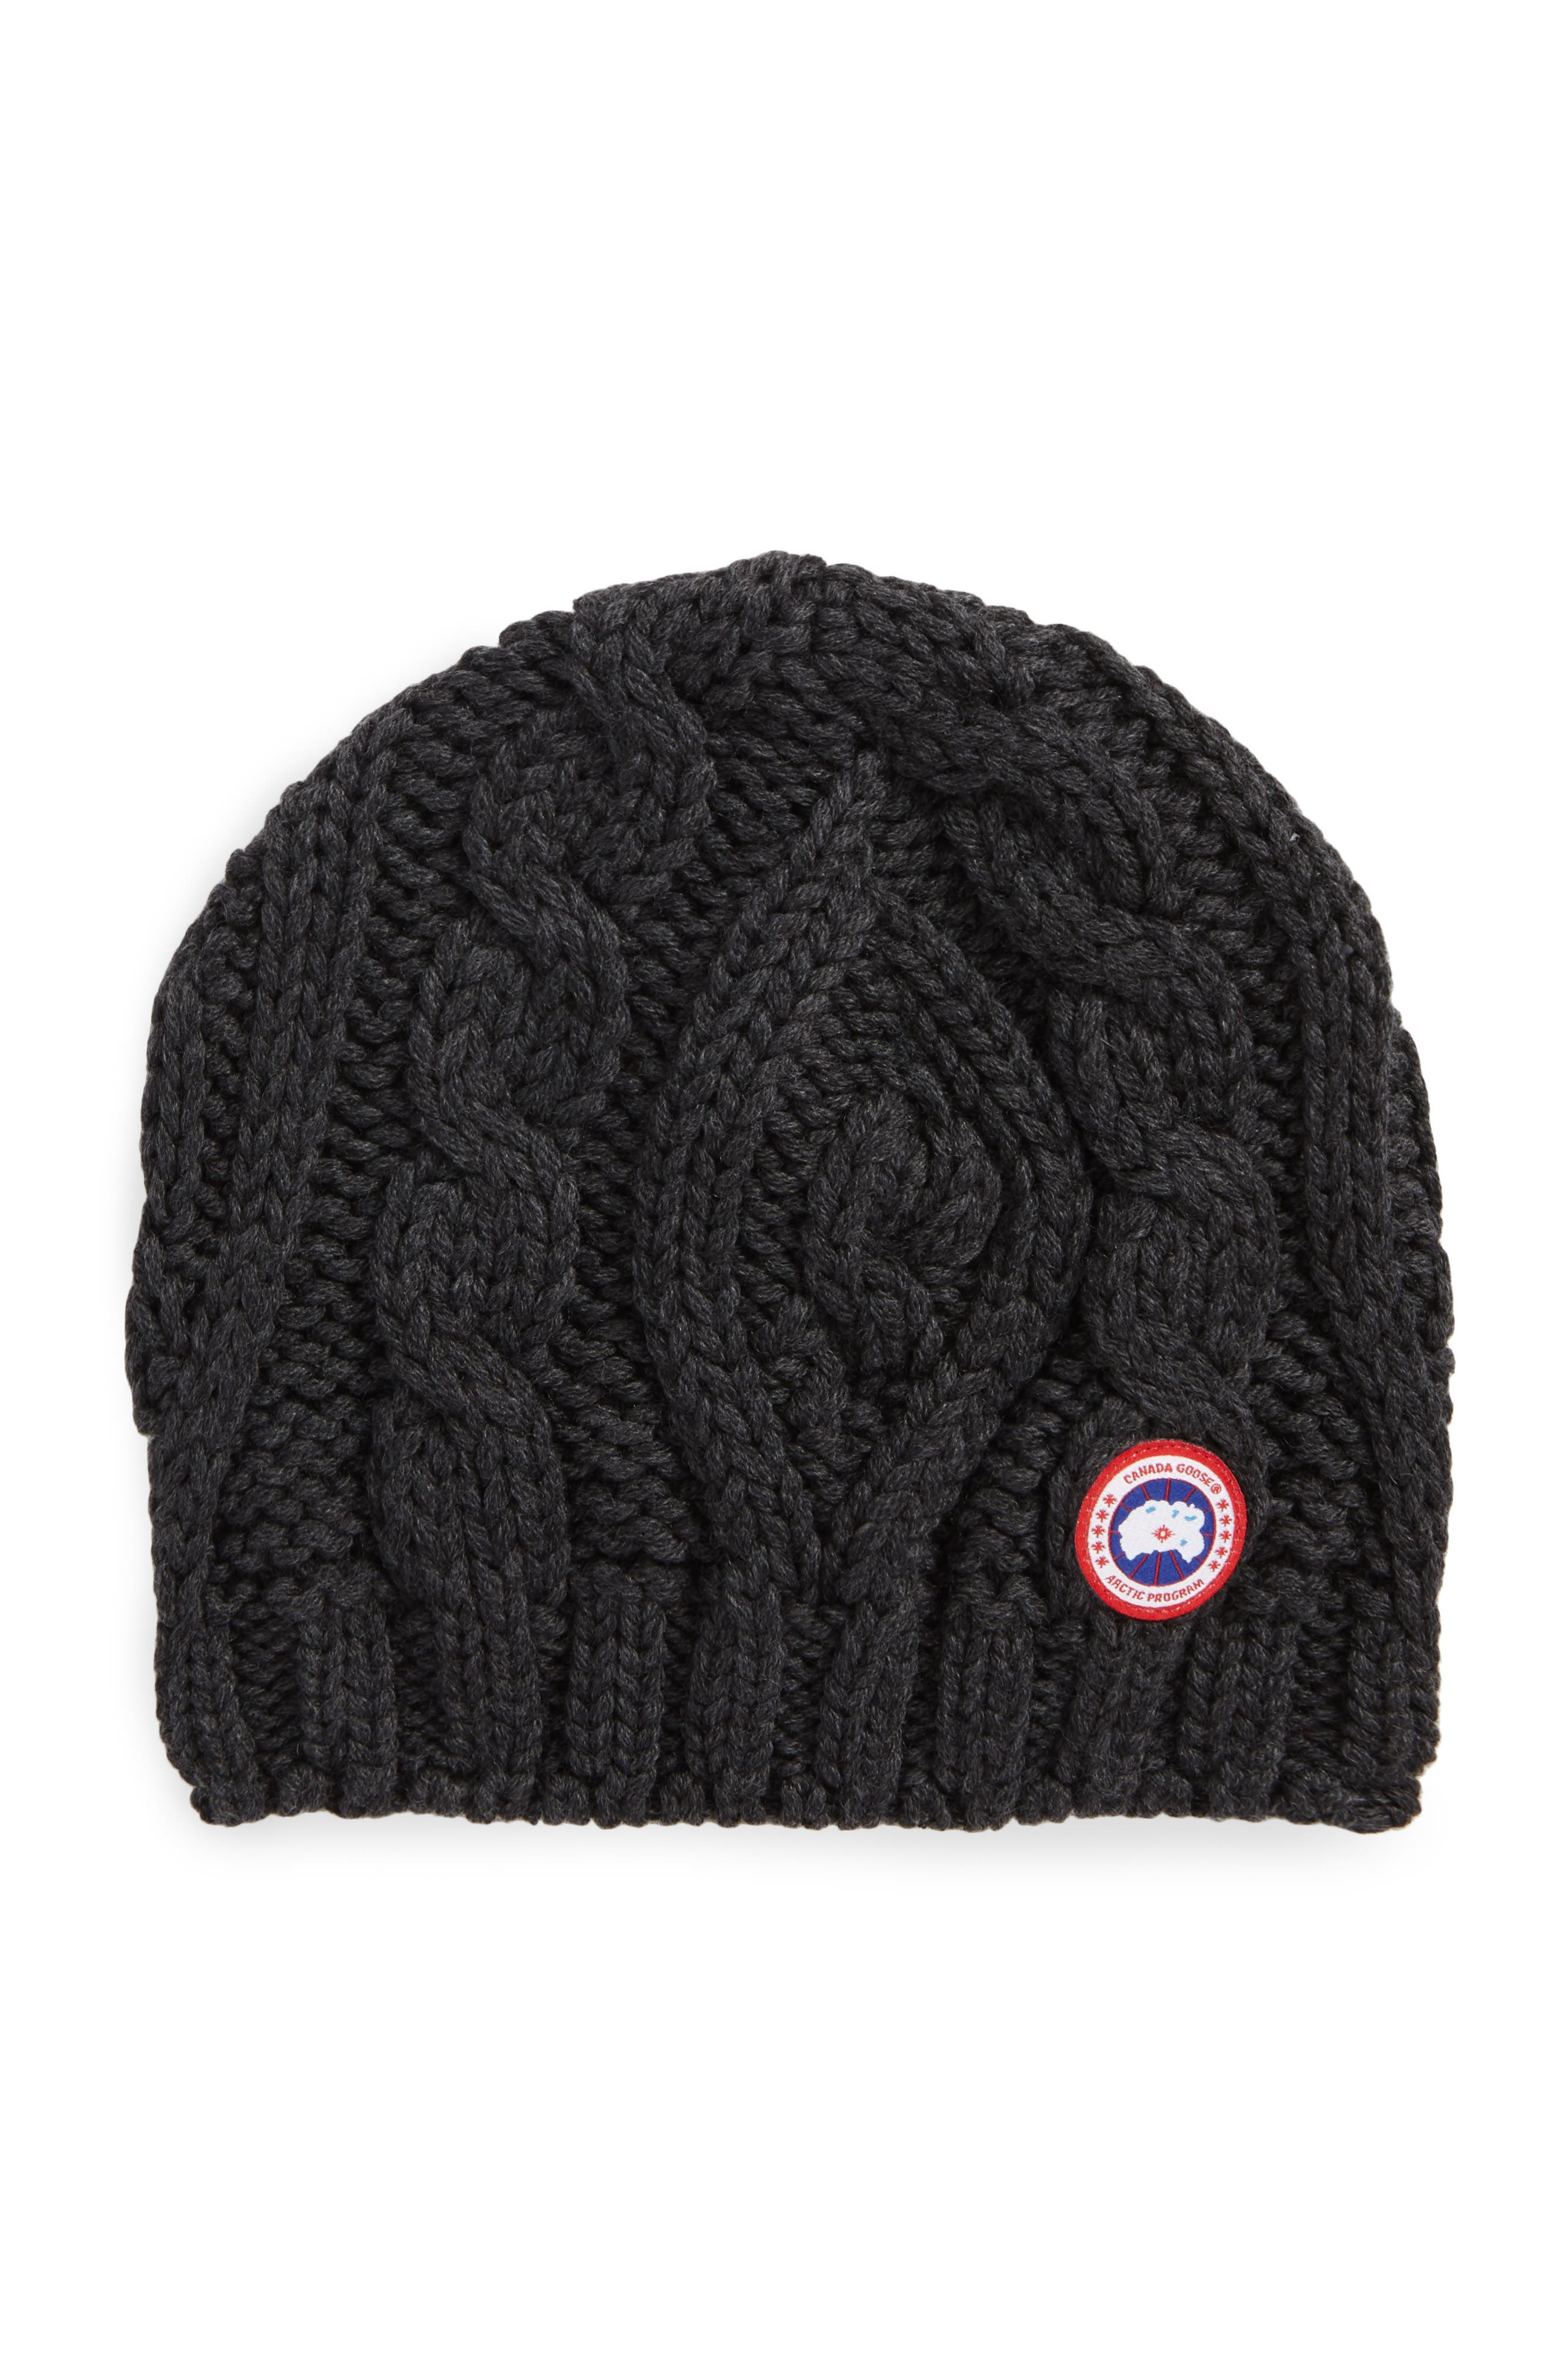 Alternate Image 1 Selected - Canada Goose Cable Knit Merino Wool Beanie